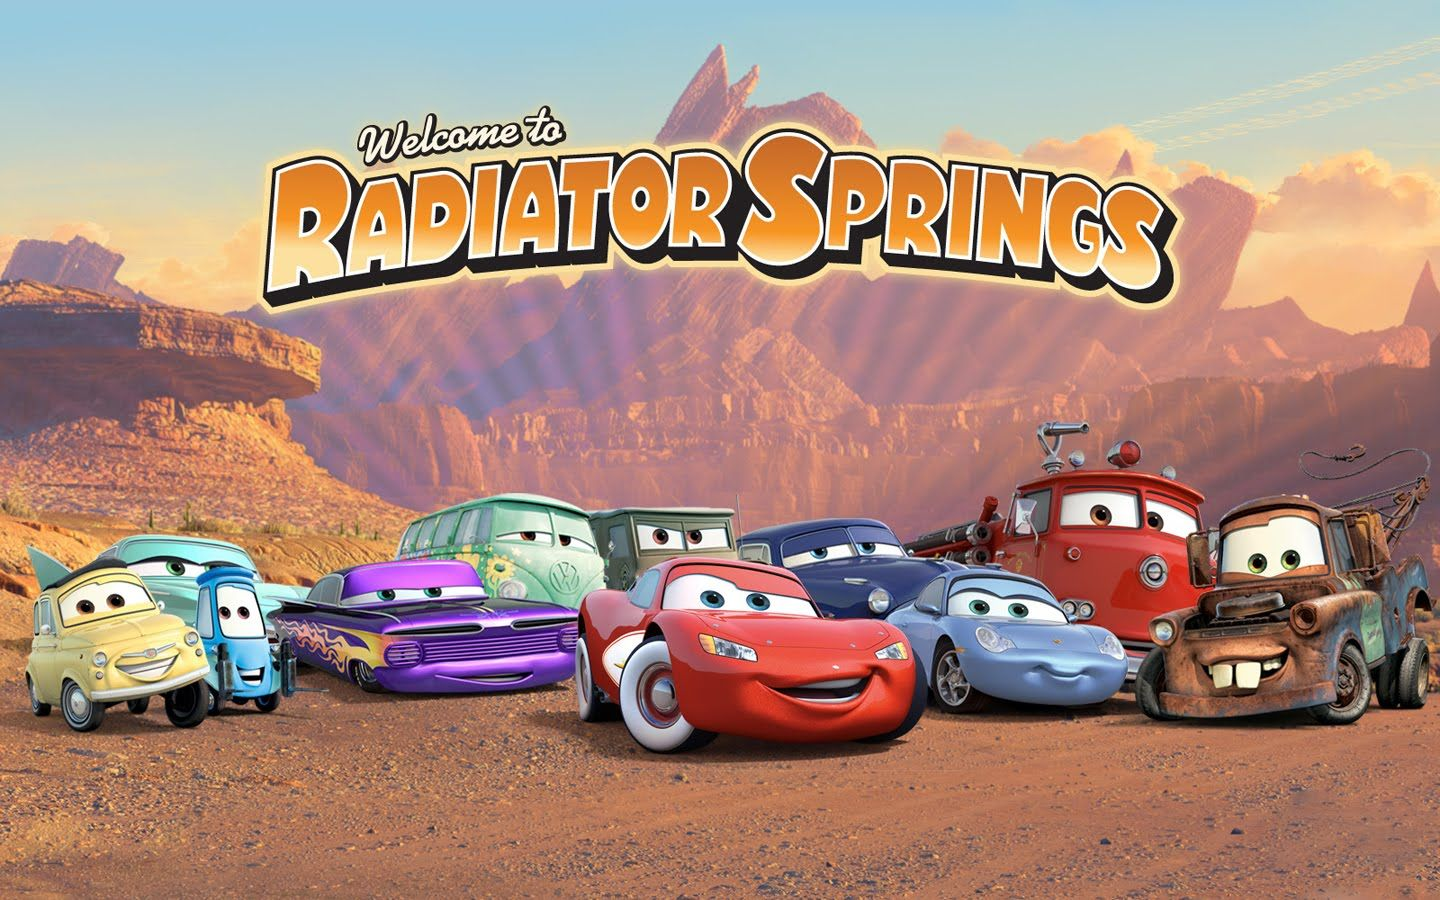 disney cars radiator springs disney pixar cars photo 33166901 fanpop